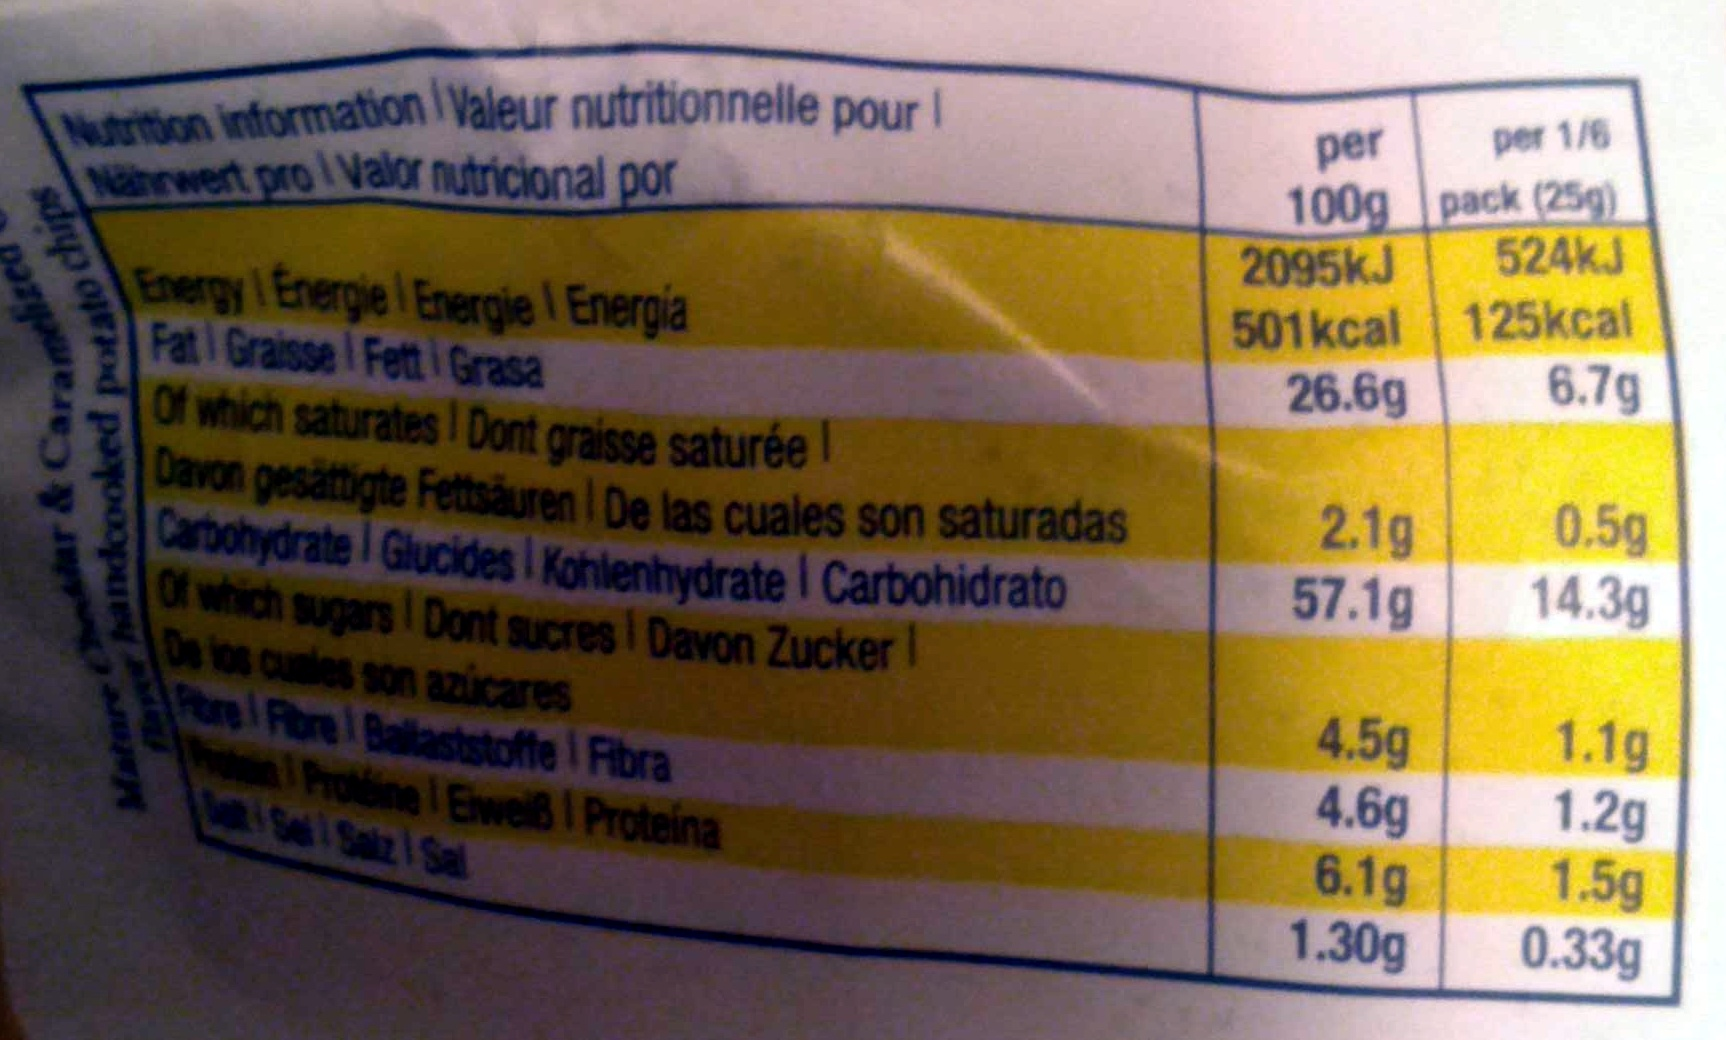 Hand Cooked Potato Chips Mature Cheddar & Caramelized Onion - Nutrition facts - fr